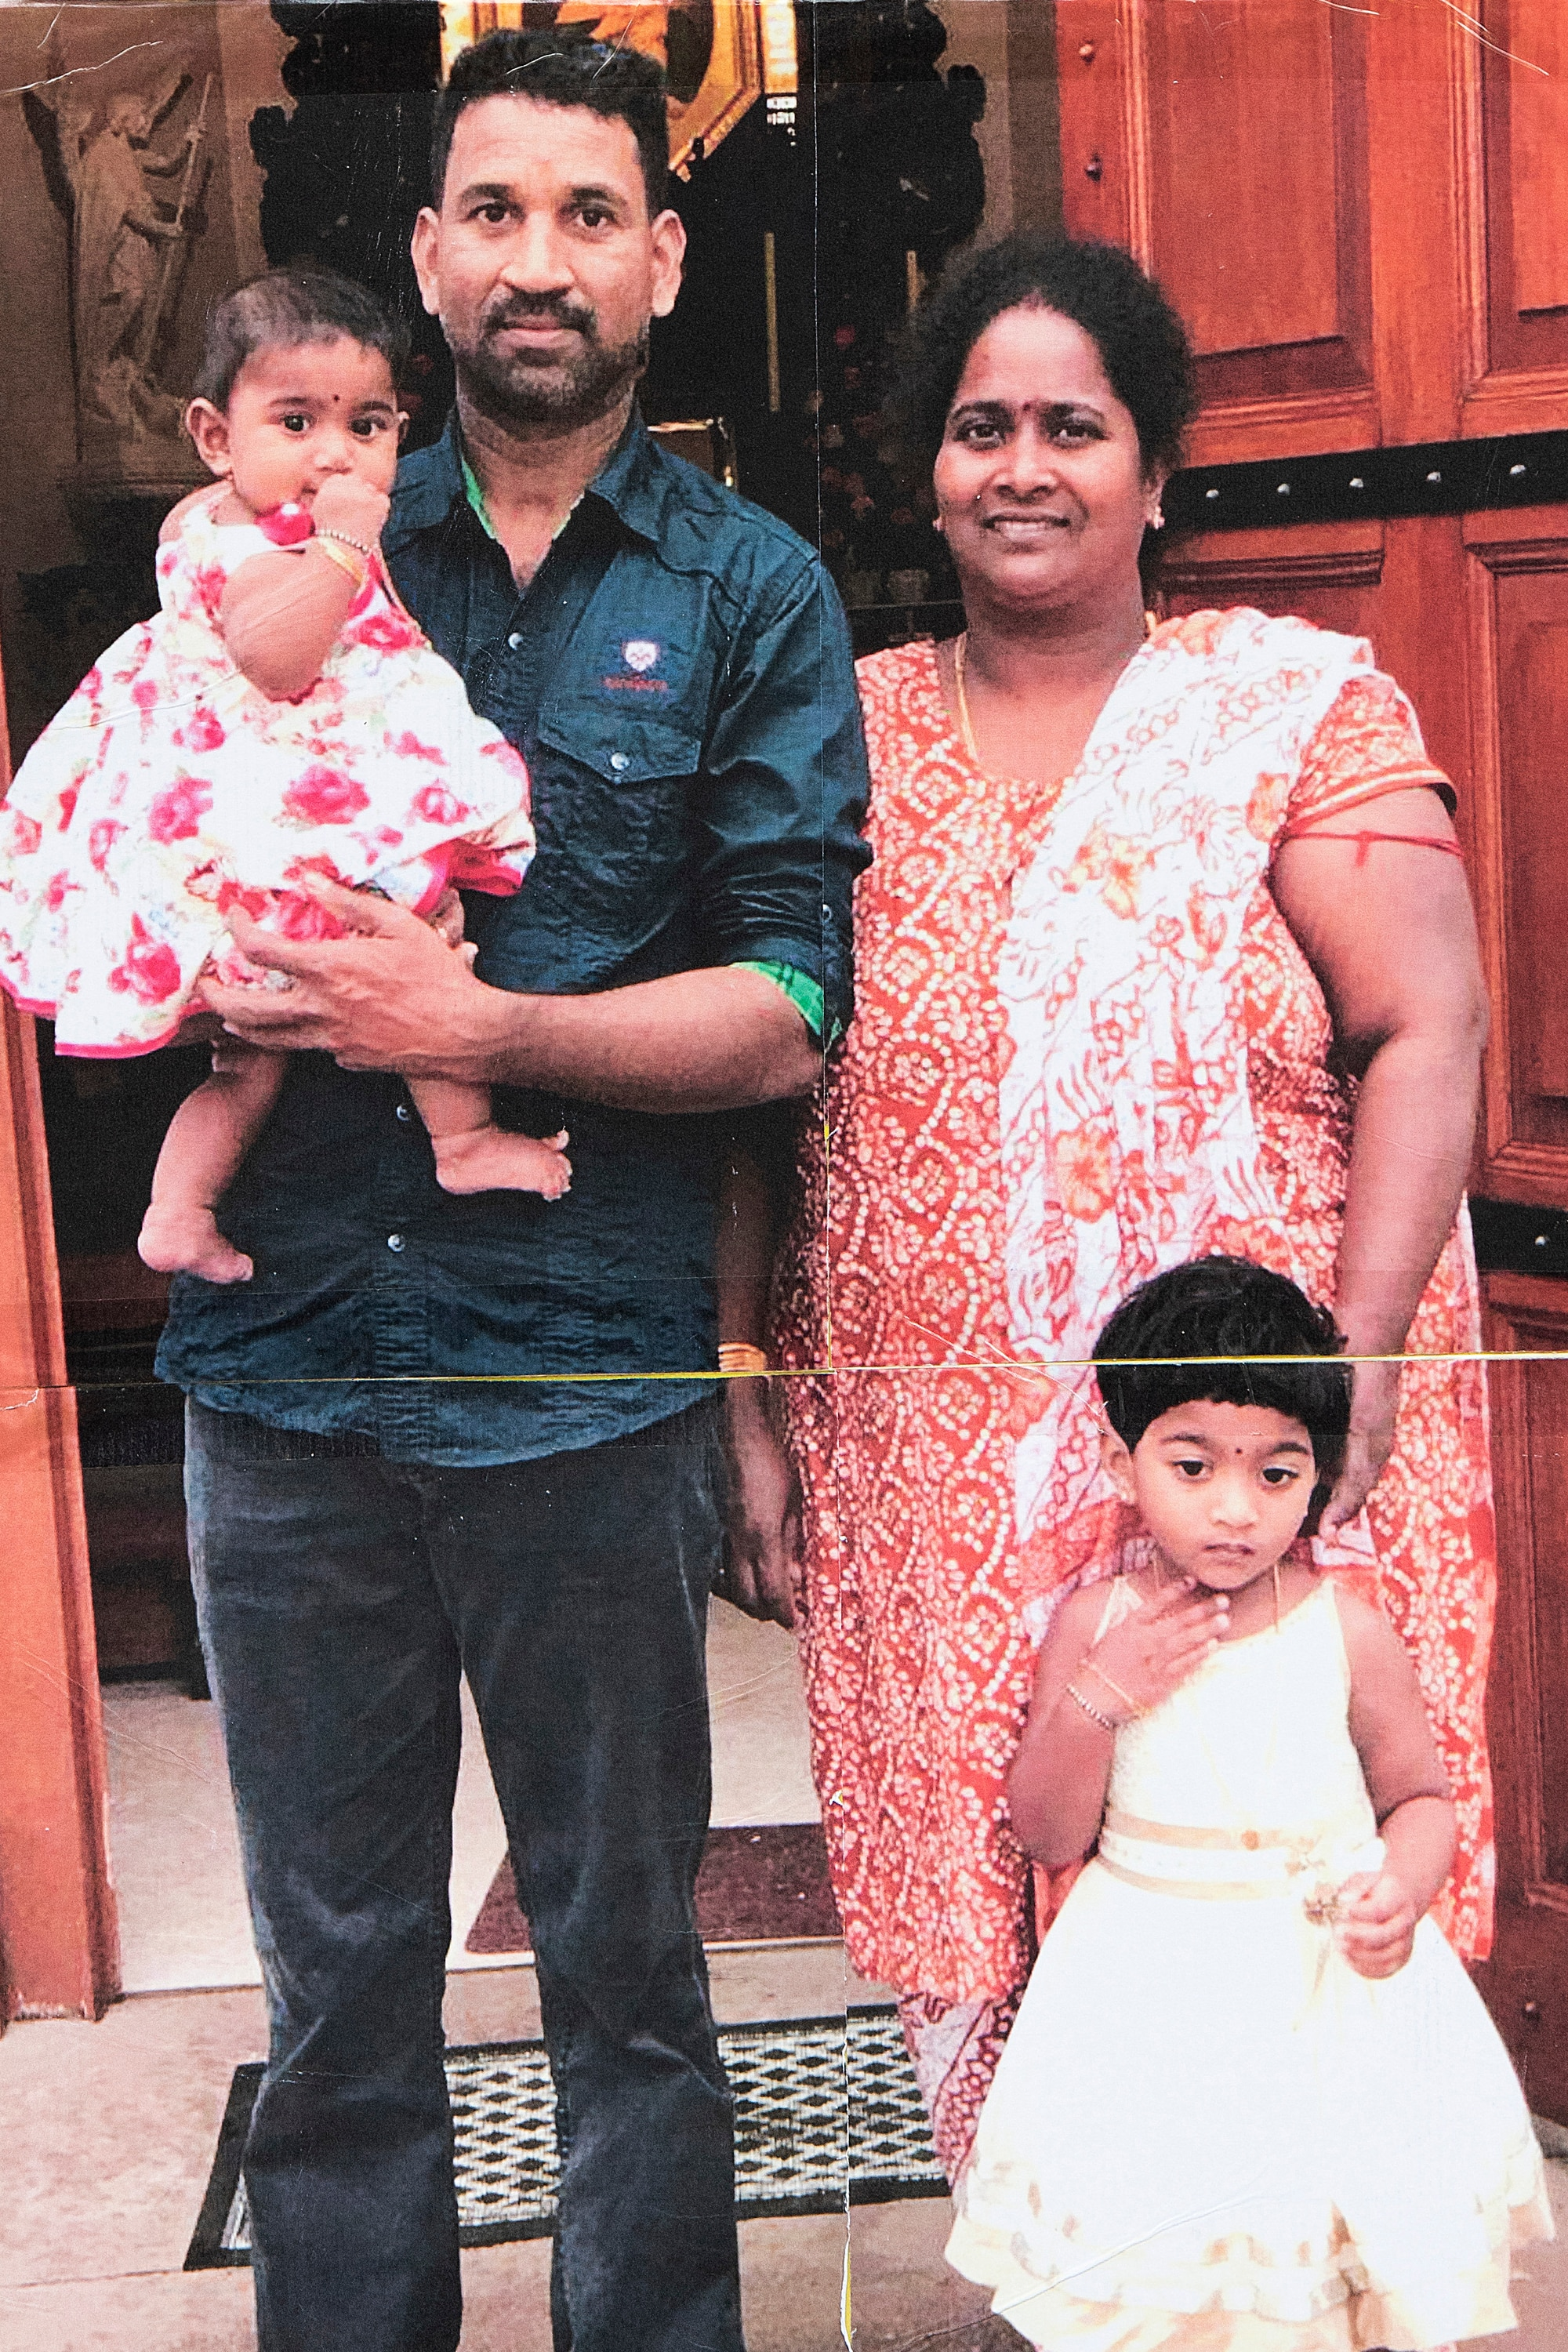 Tamil asylum seeker family to be deported to Sri Lanka next year